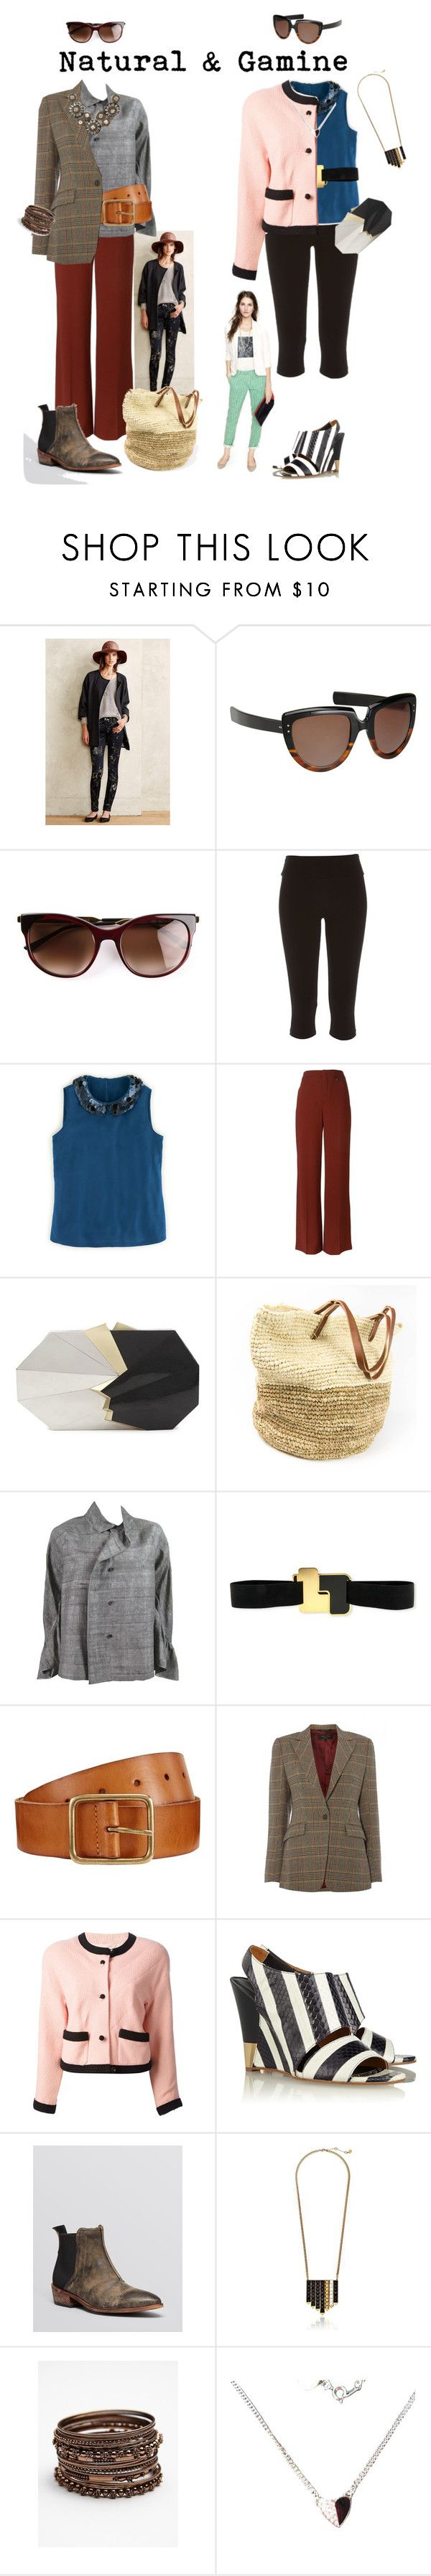 """Natural & Gamine Outfits"" by earthnut ❤ liked on Polyvore featuring Madewell, 7 For All Mankind, Oliver Goldsmith, Thierry Lasry, River Island, Boden, Chloé, Jill Haber, Comme des Garçons and Roksanda"